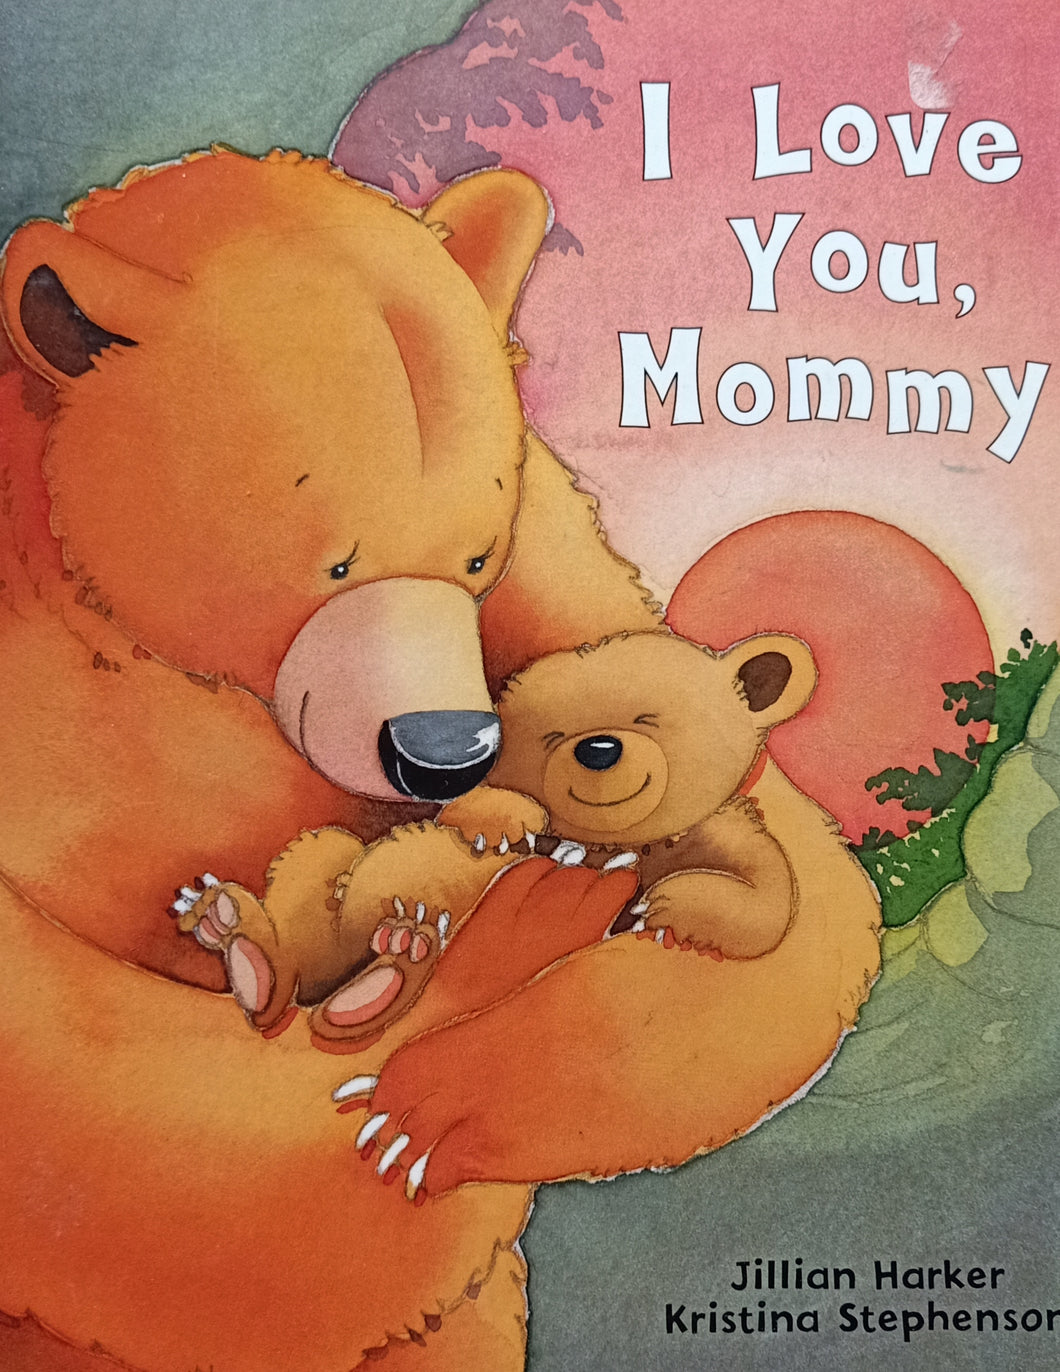 I Love You Mommy by Jullian Harker kristina Stphenson